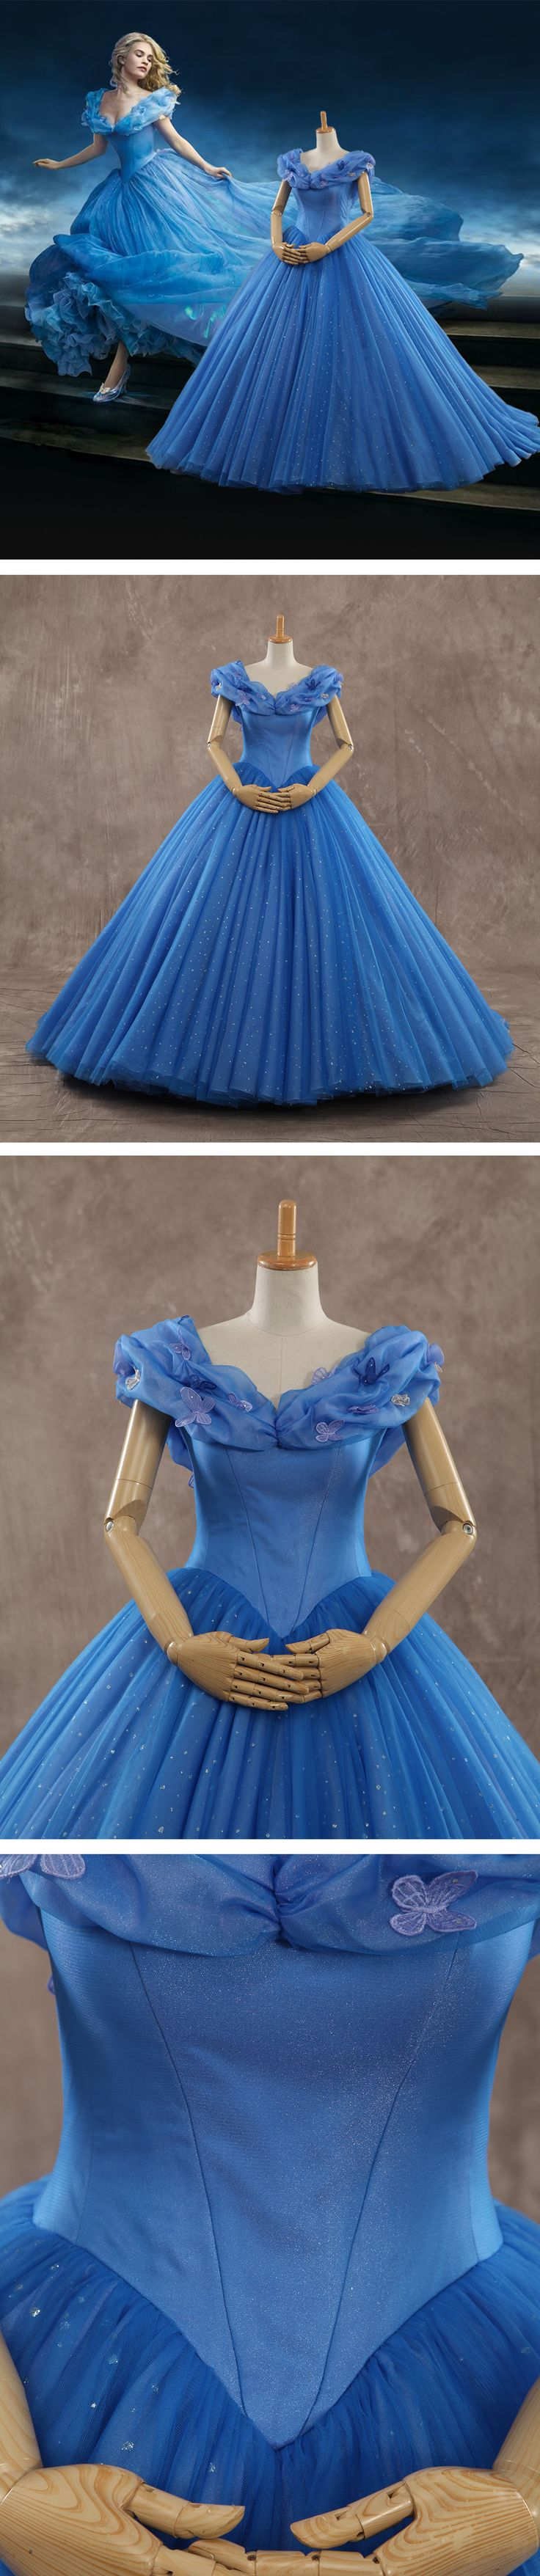 Get Cinderella's dress here! Fulfill your princess dress now!! *cough TAMARA cough* go get the dress